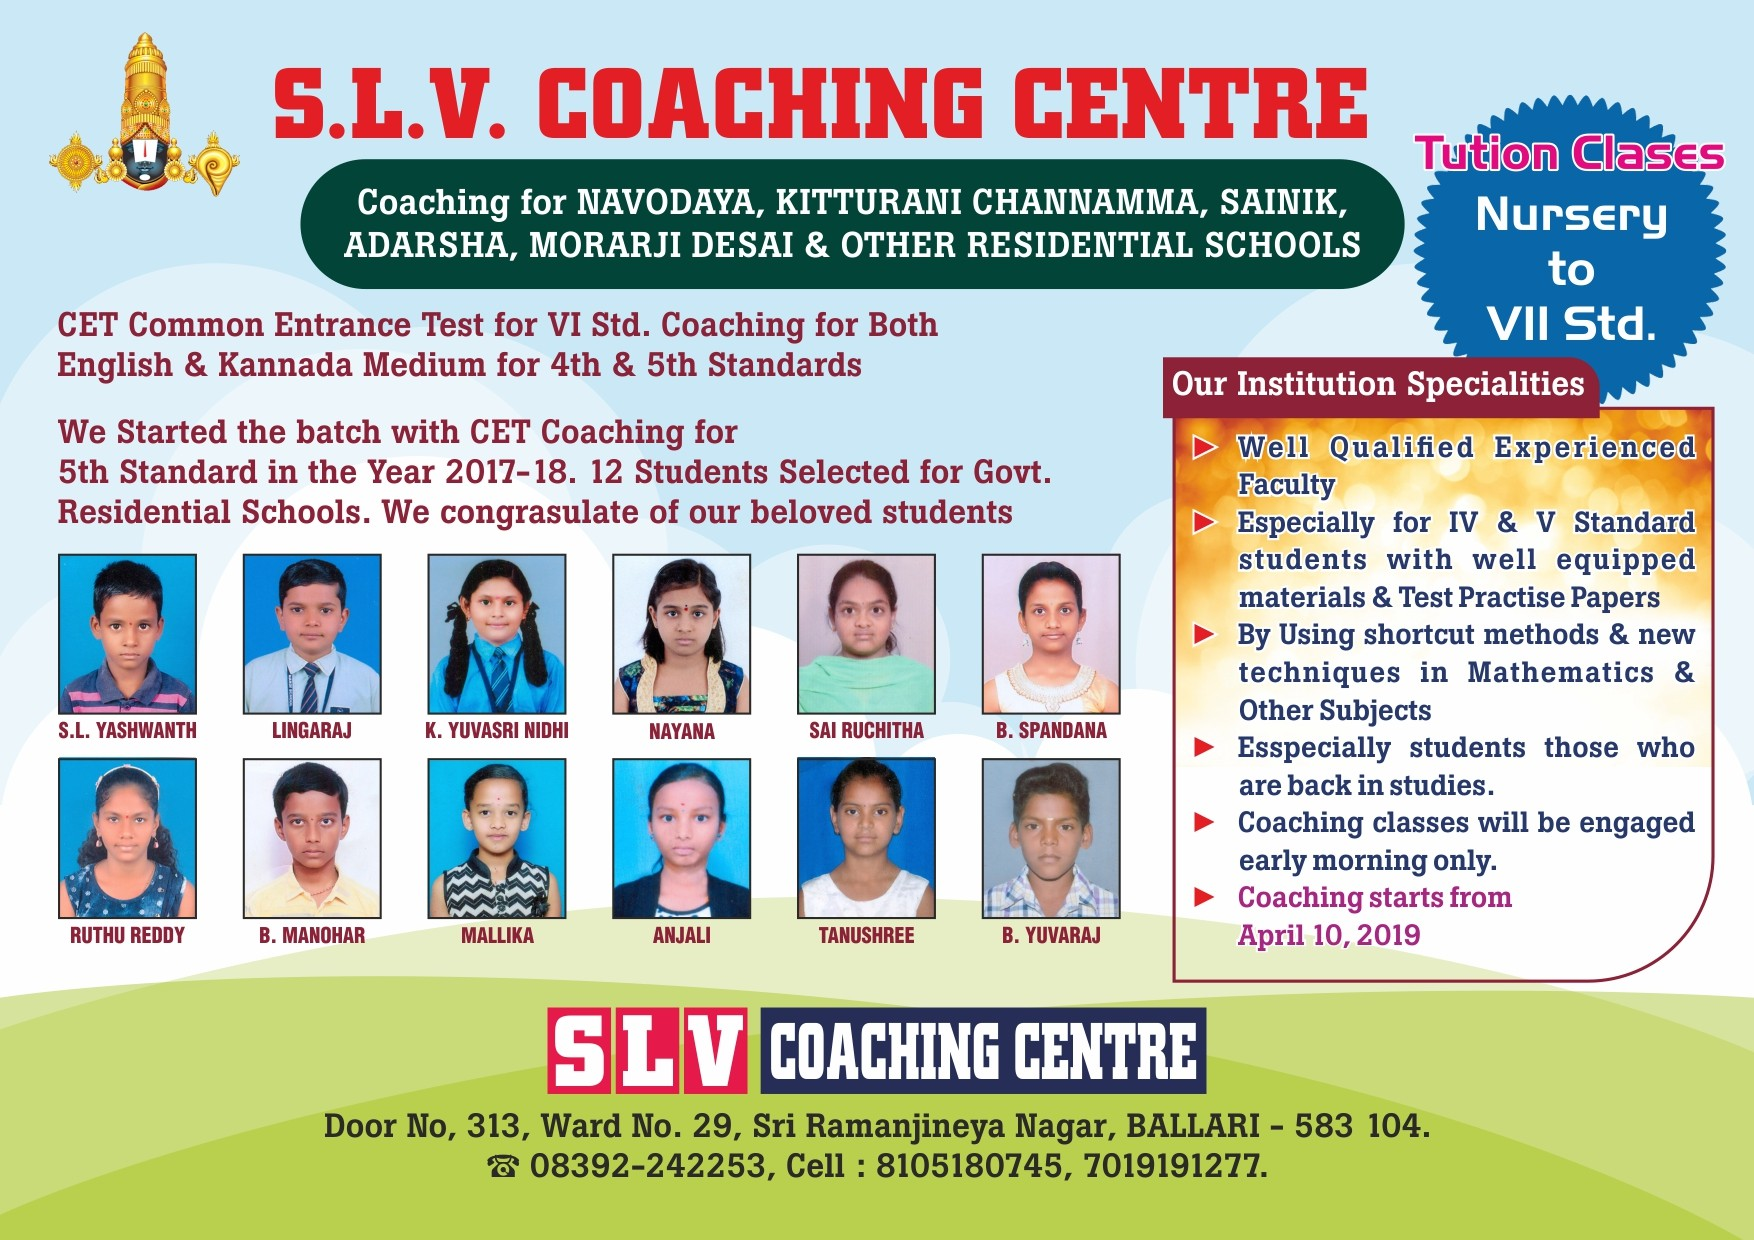 S.L.V. COACHING CENTRE